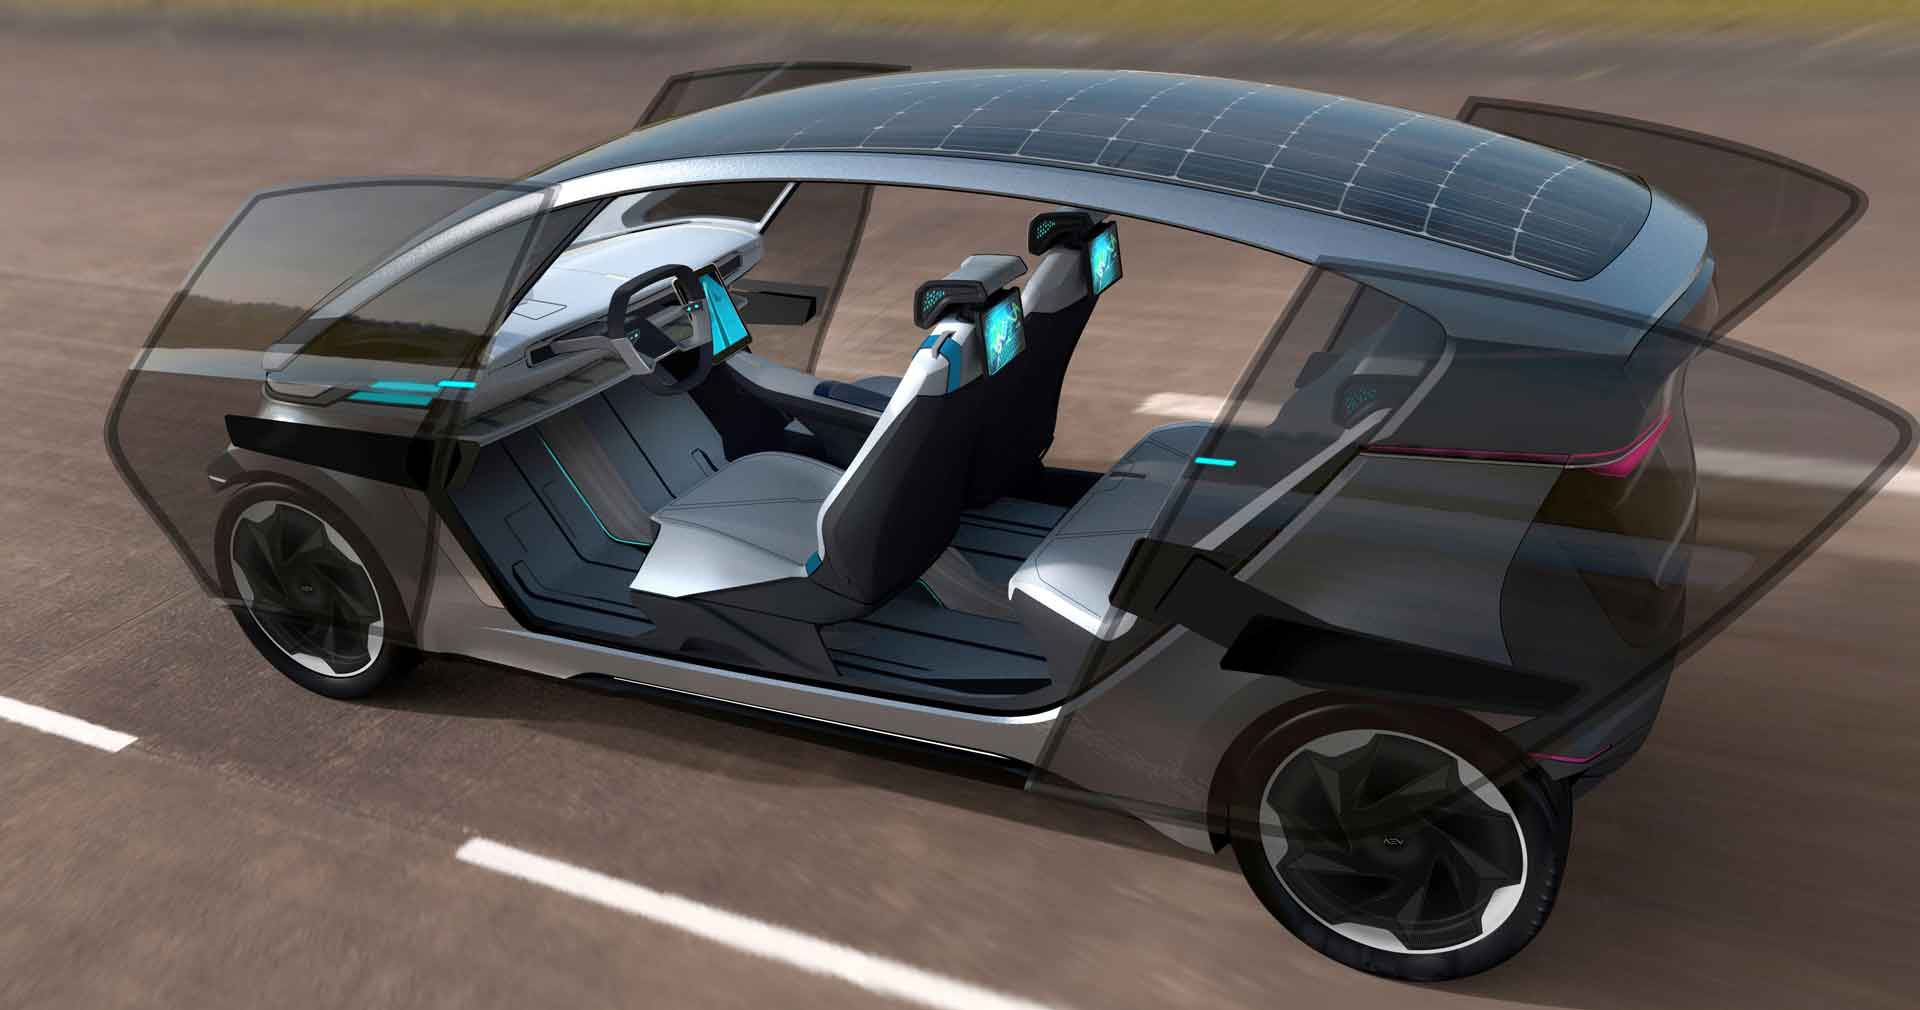 Homegrown autonomous EV charges from solar panels in roof Image